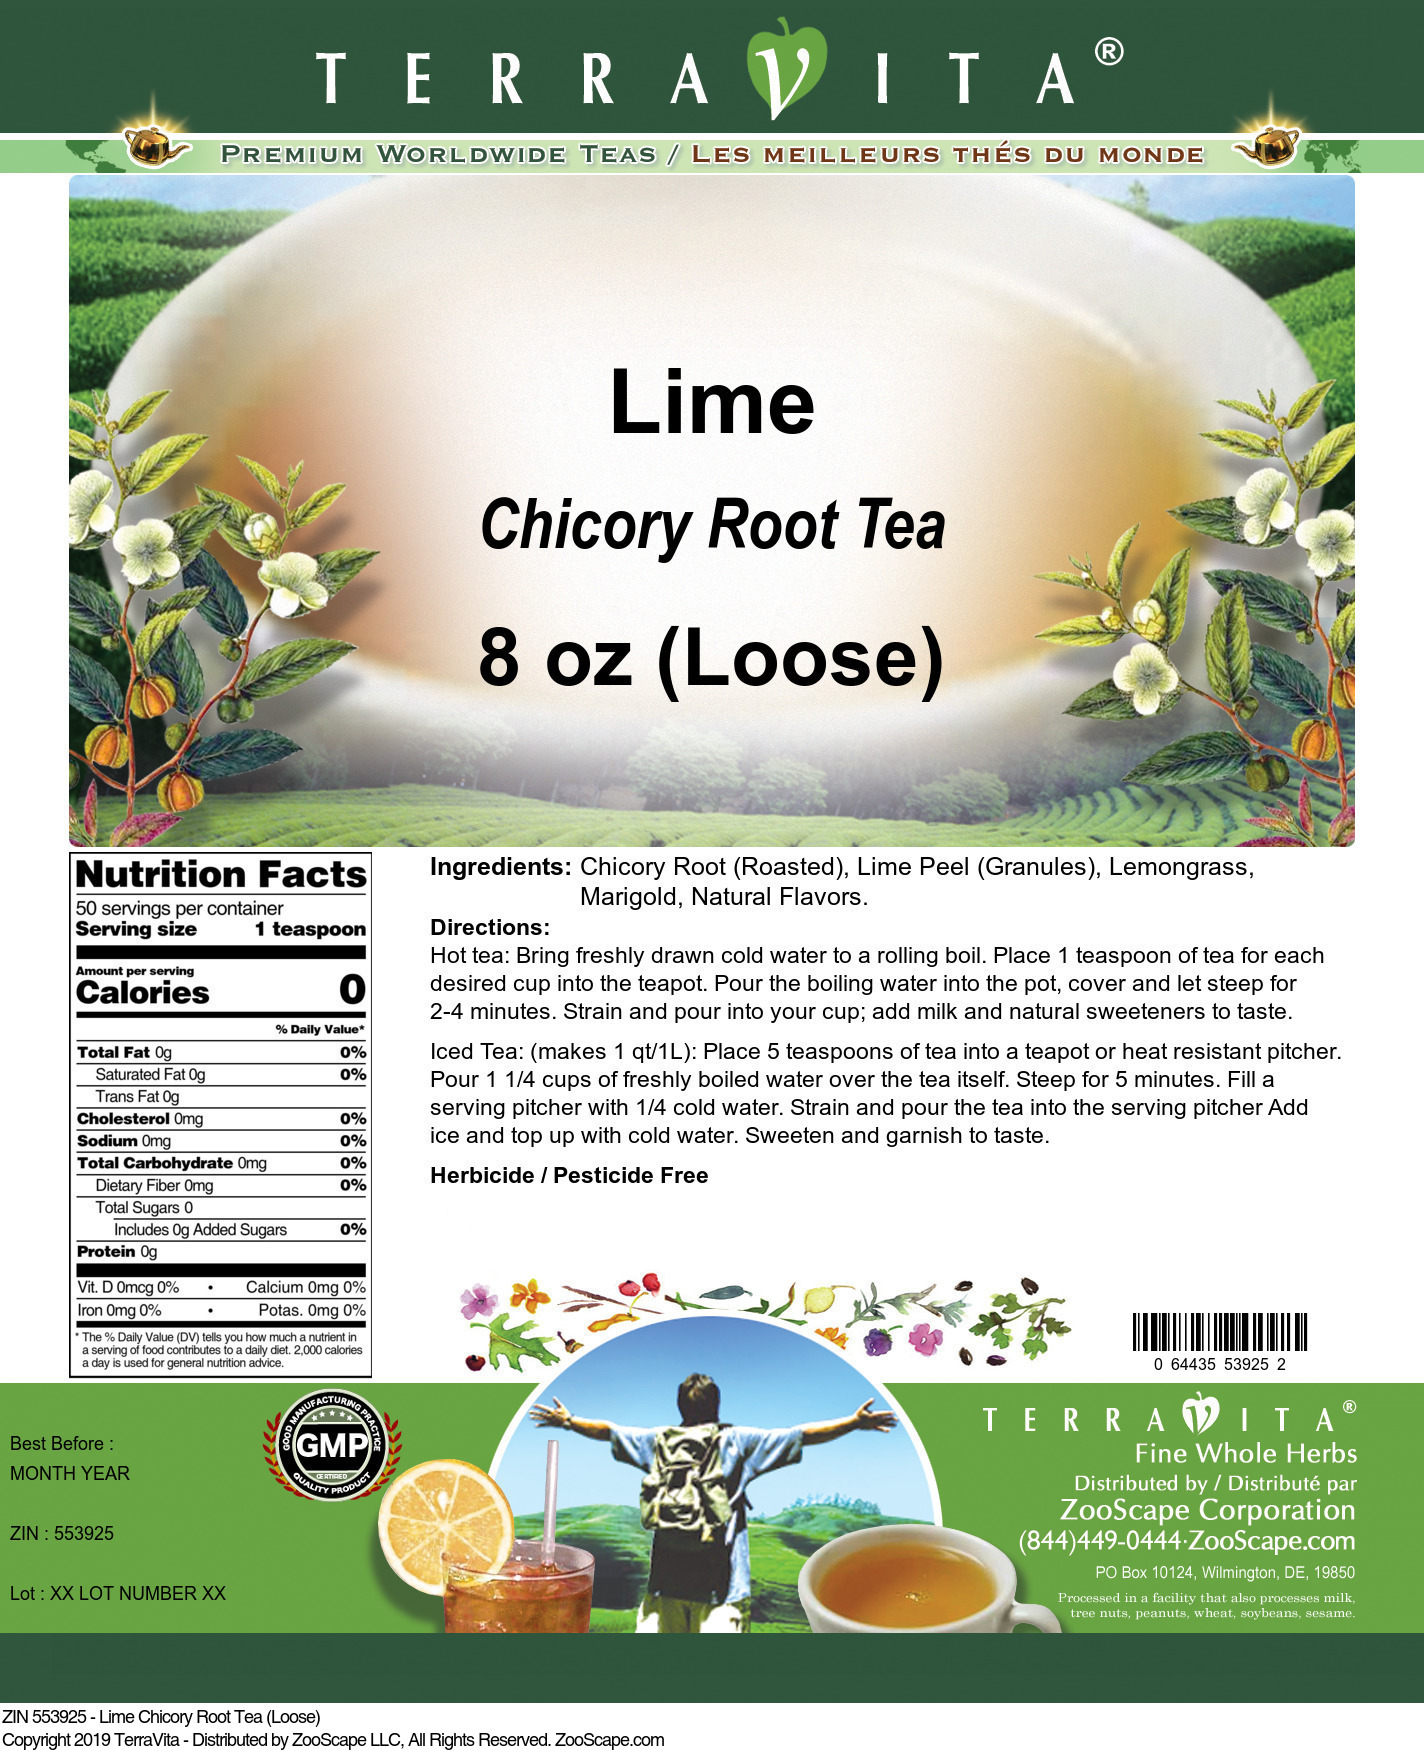 Lime Chicory Root Tea (Loose)